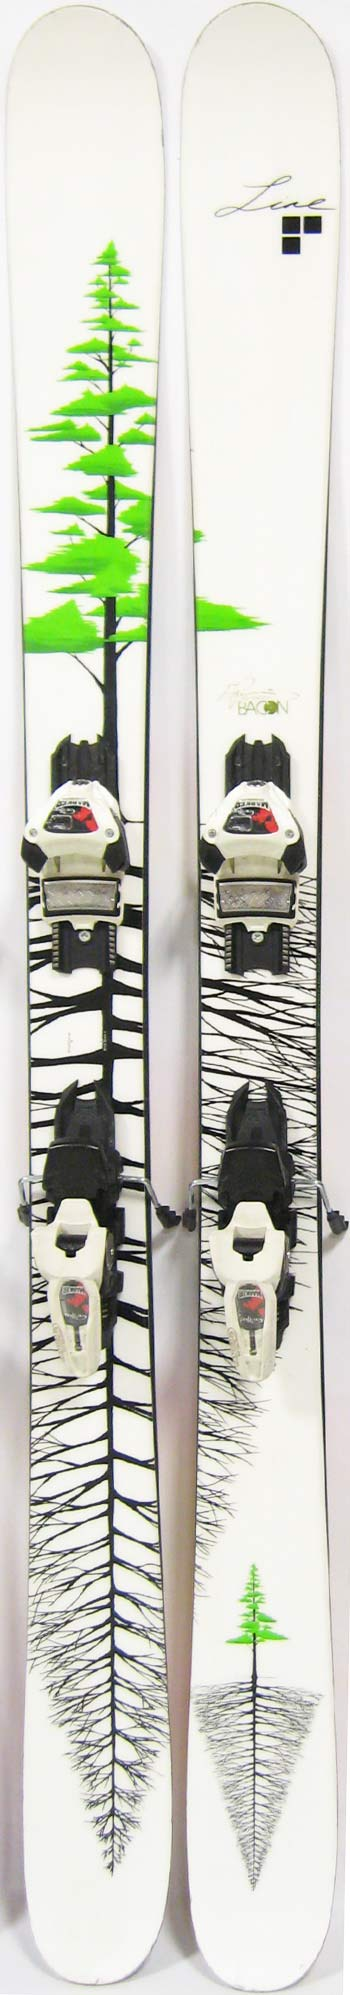 Topsheets of 2012 Line Sir Francis Bacon Skis For Sale